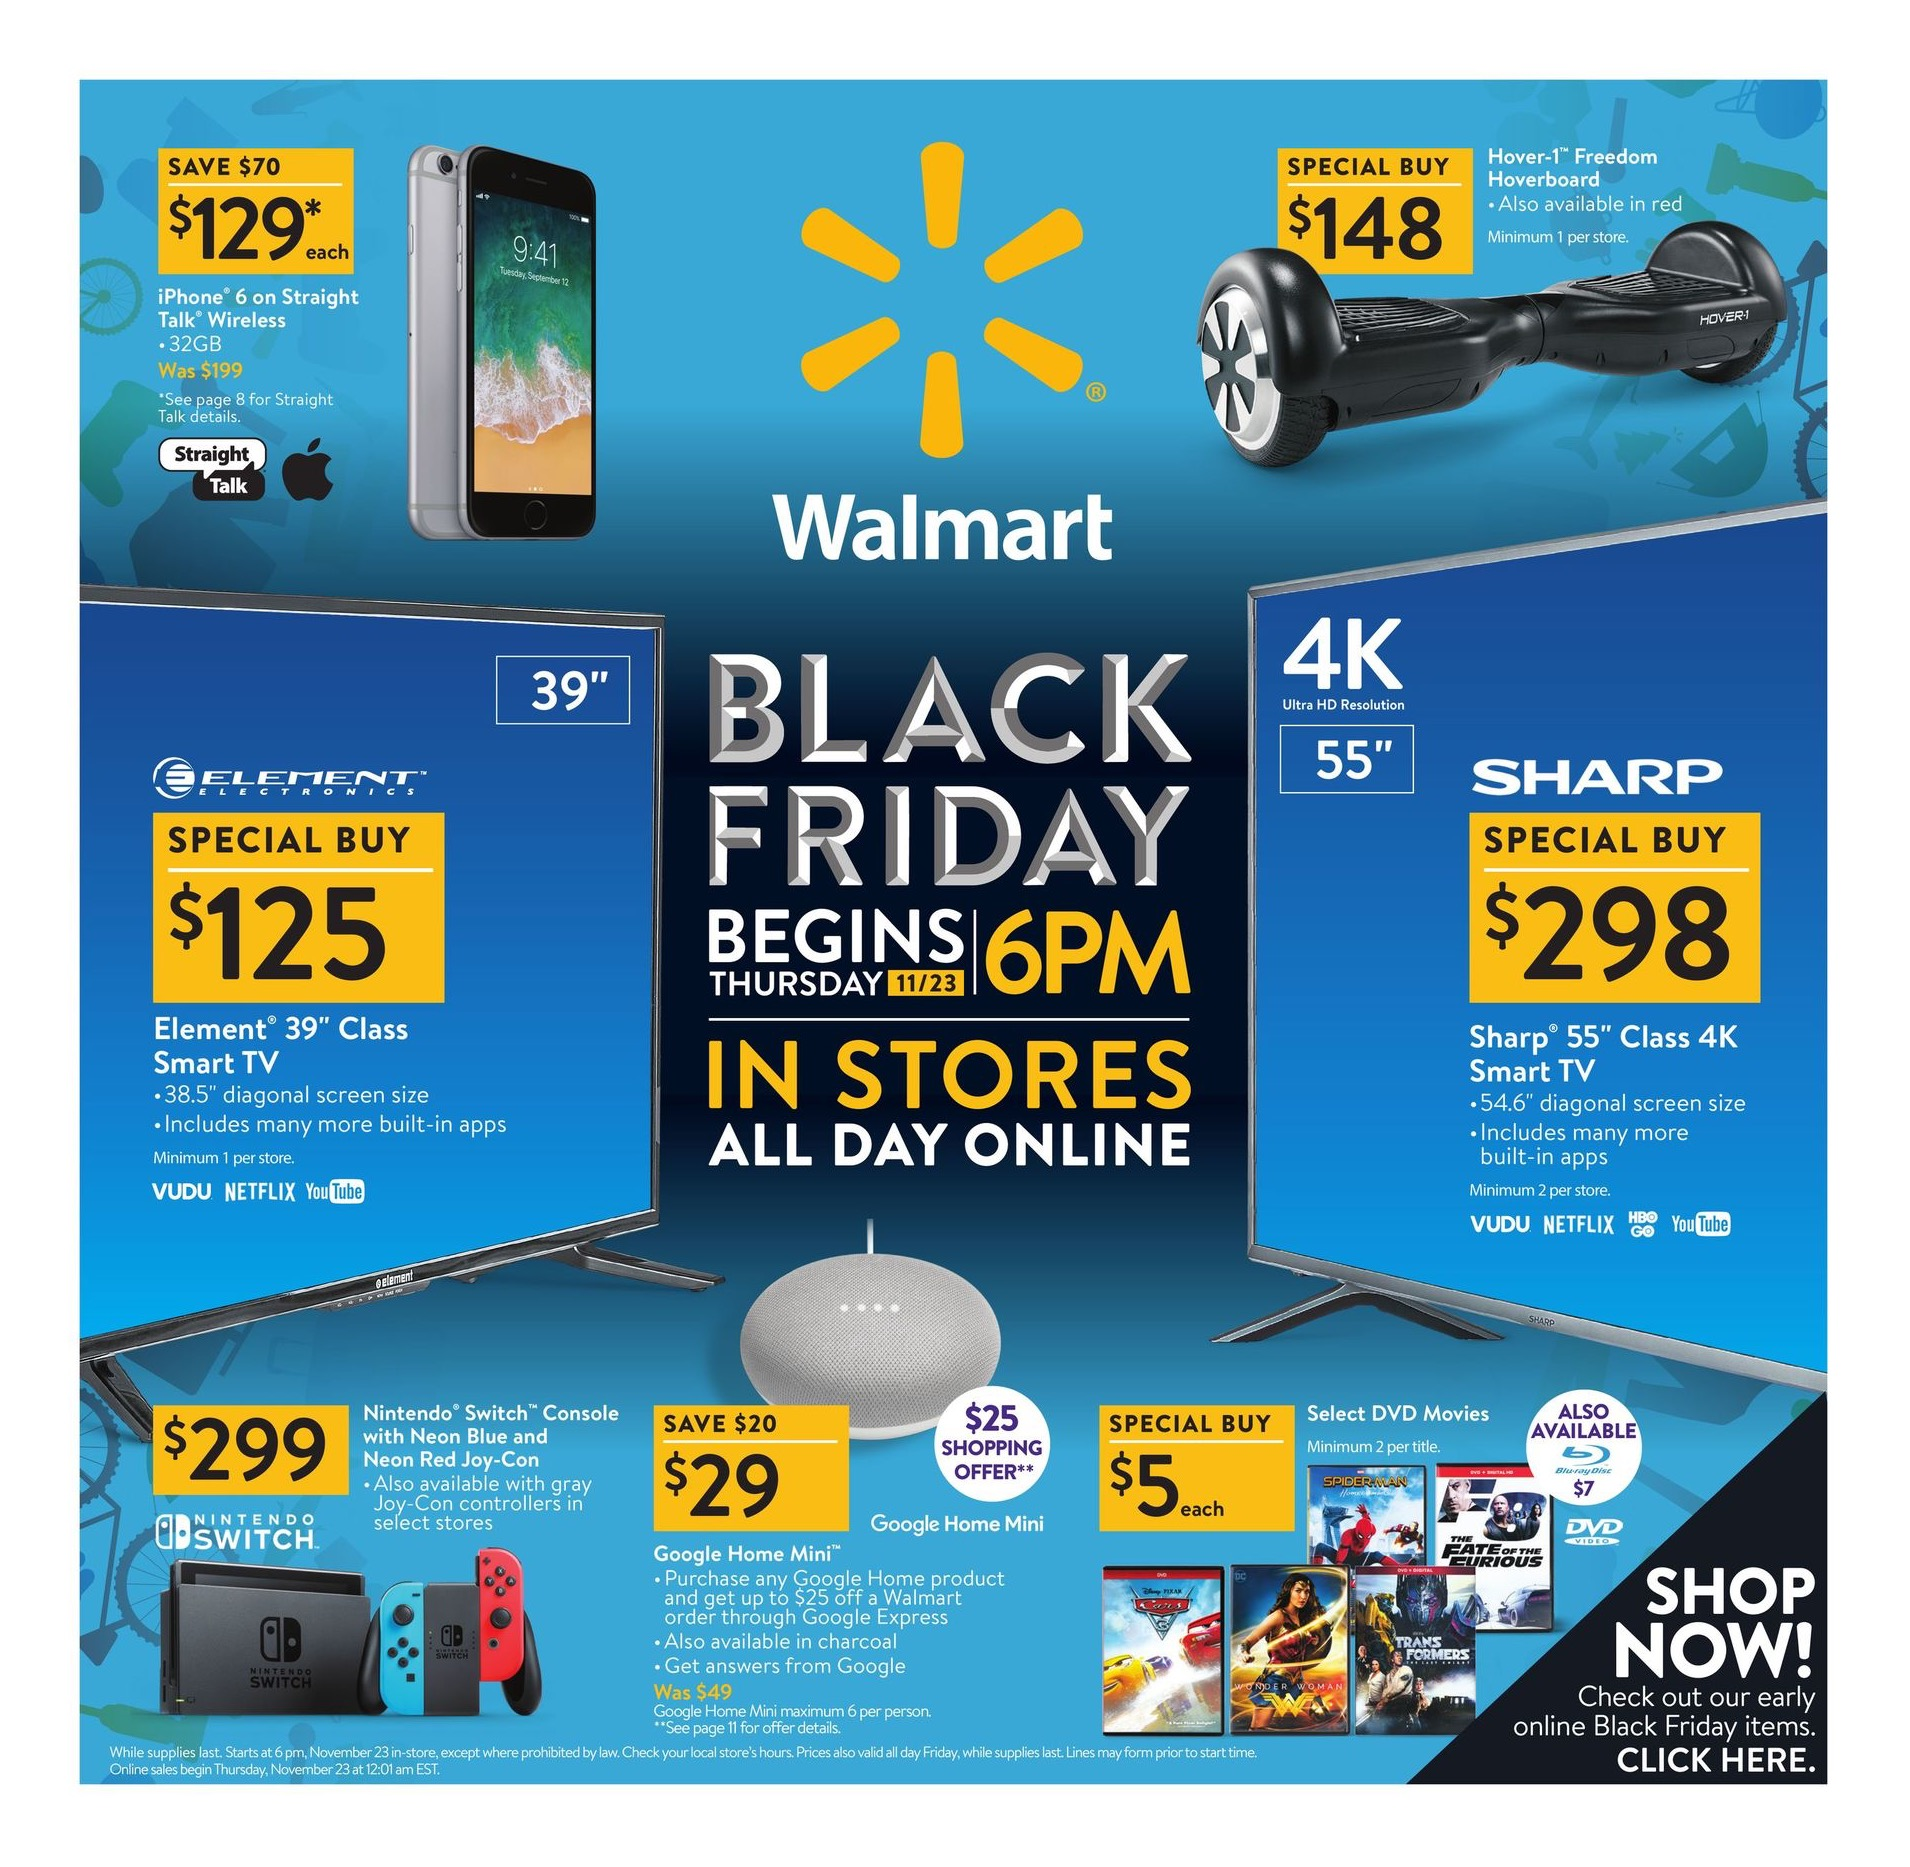 Here S The Full 36 Page Black Friday 2017 Ad From Walmart Bgr